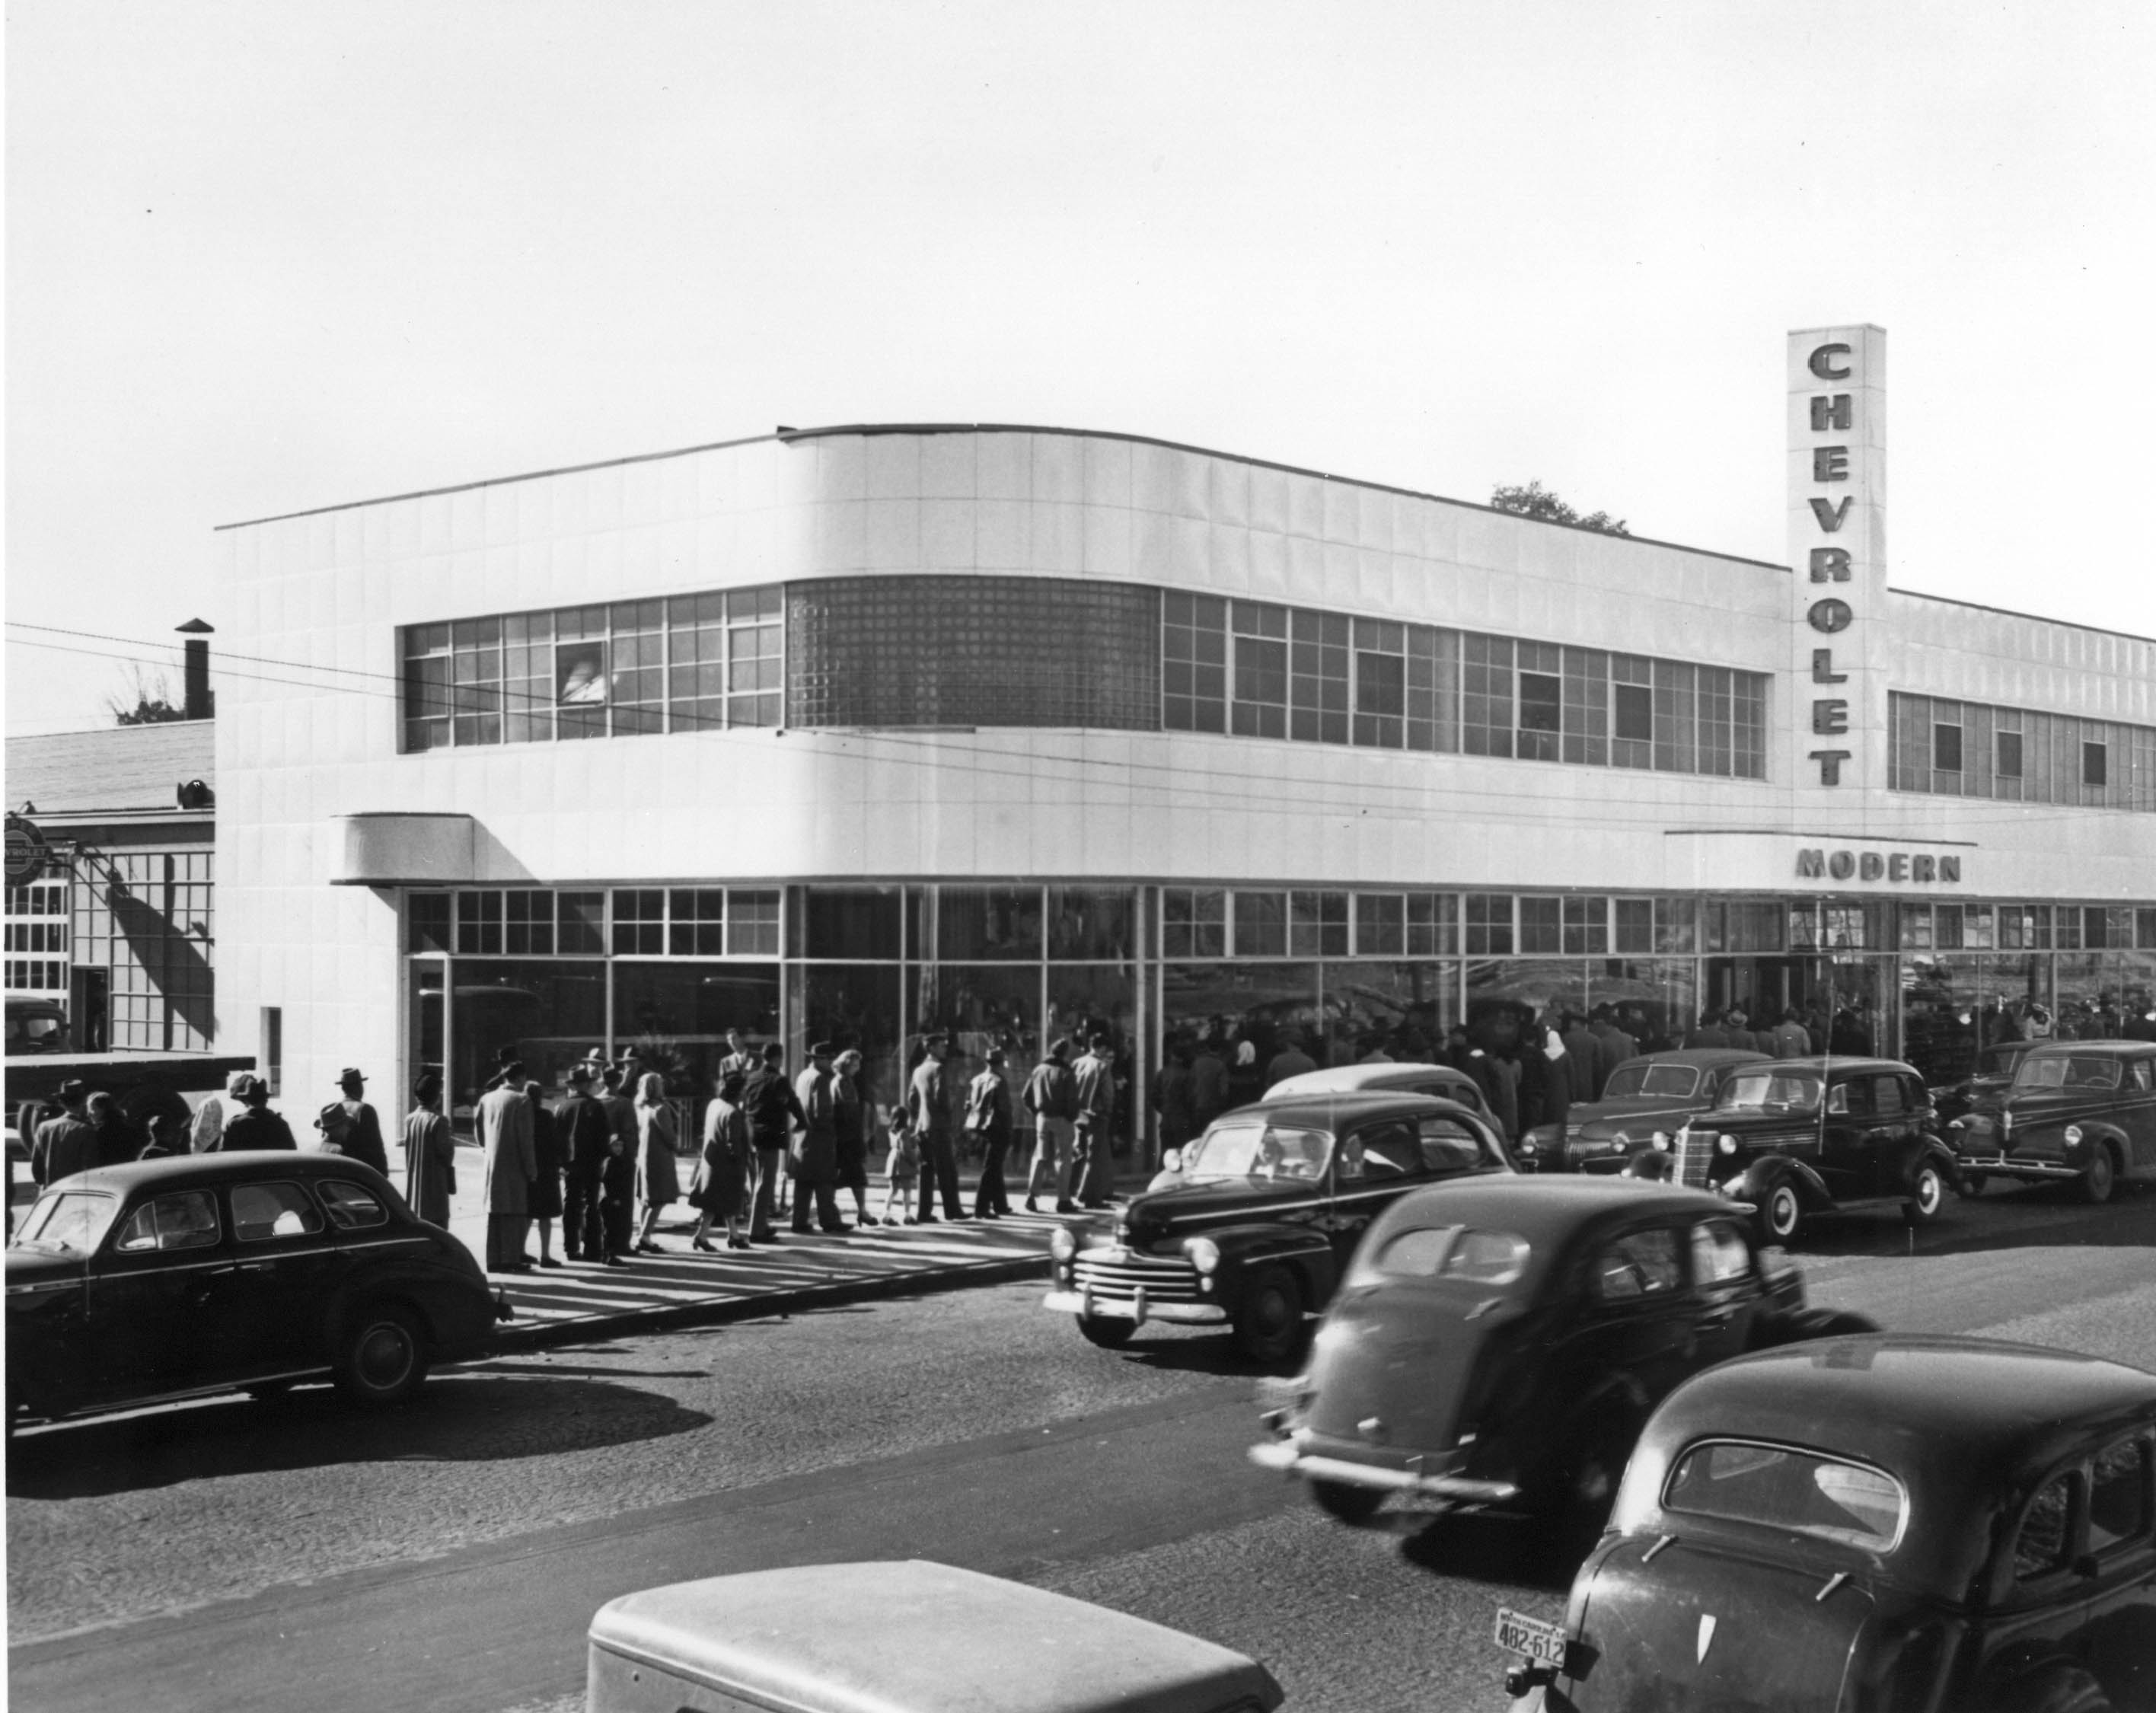 File:Modern Chevrolet 1950s - 800 West 4th Street.jpg - Wikimedia ...